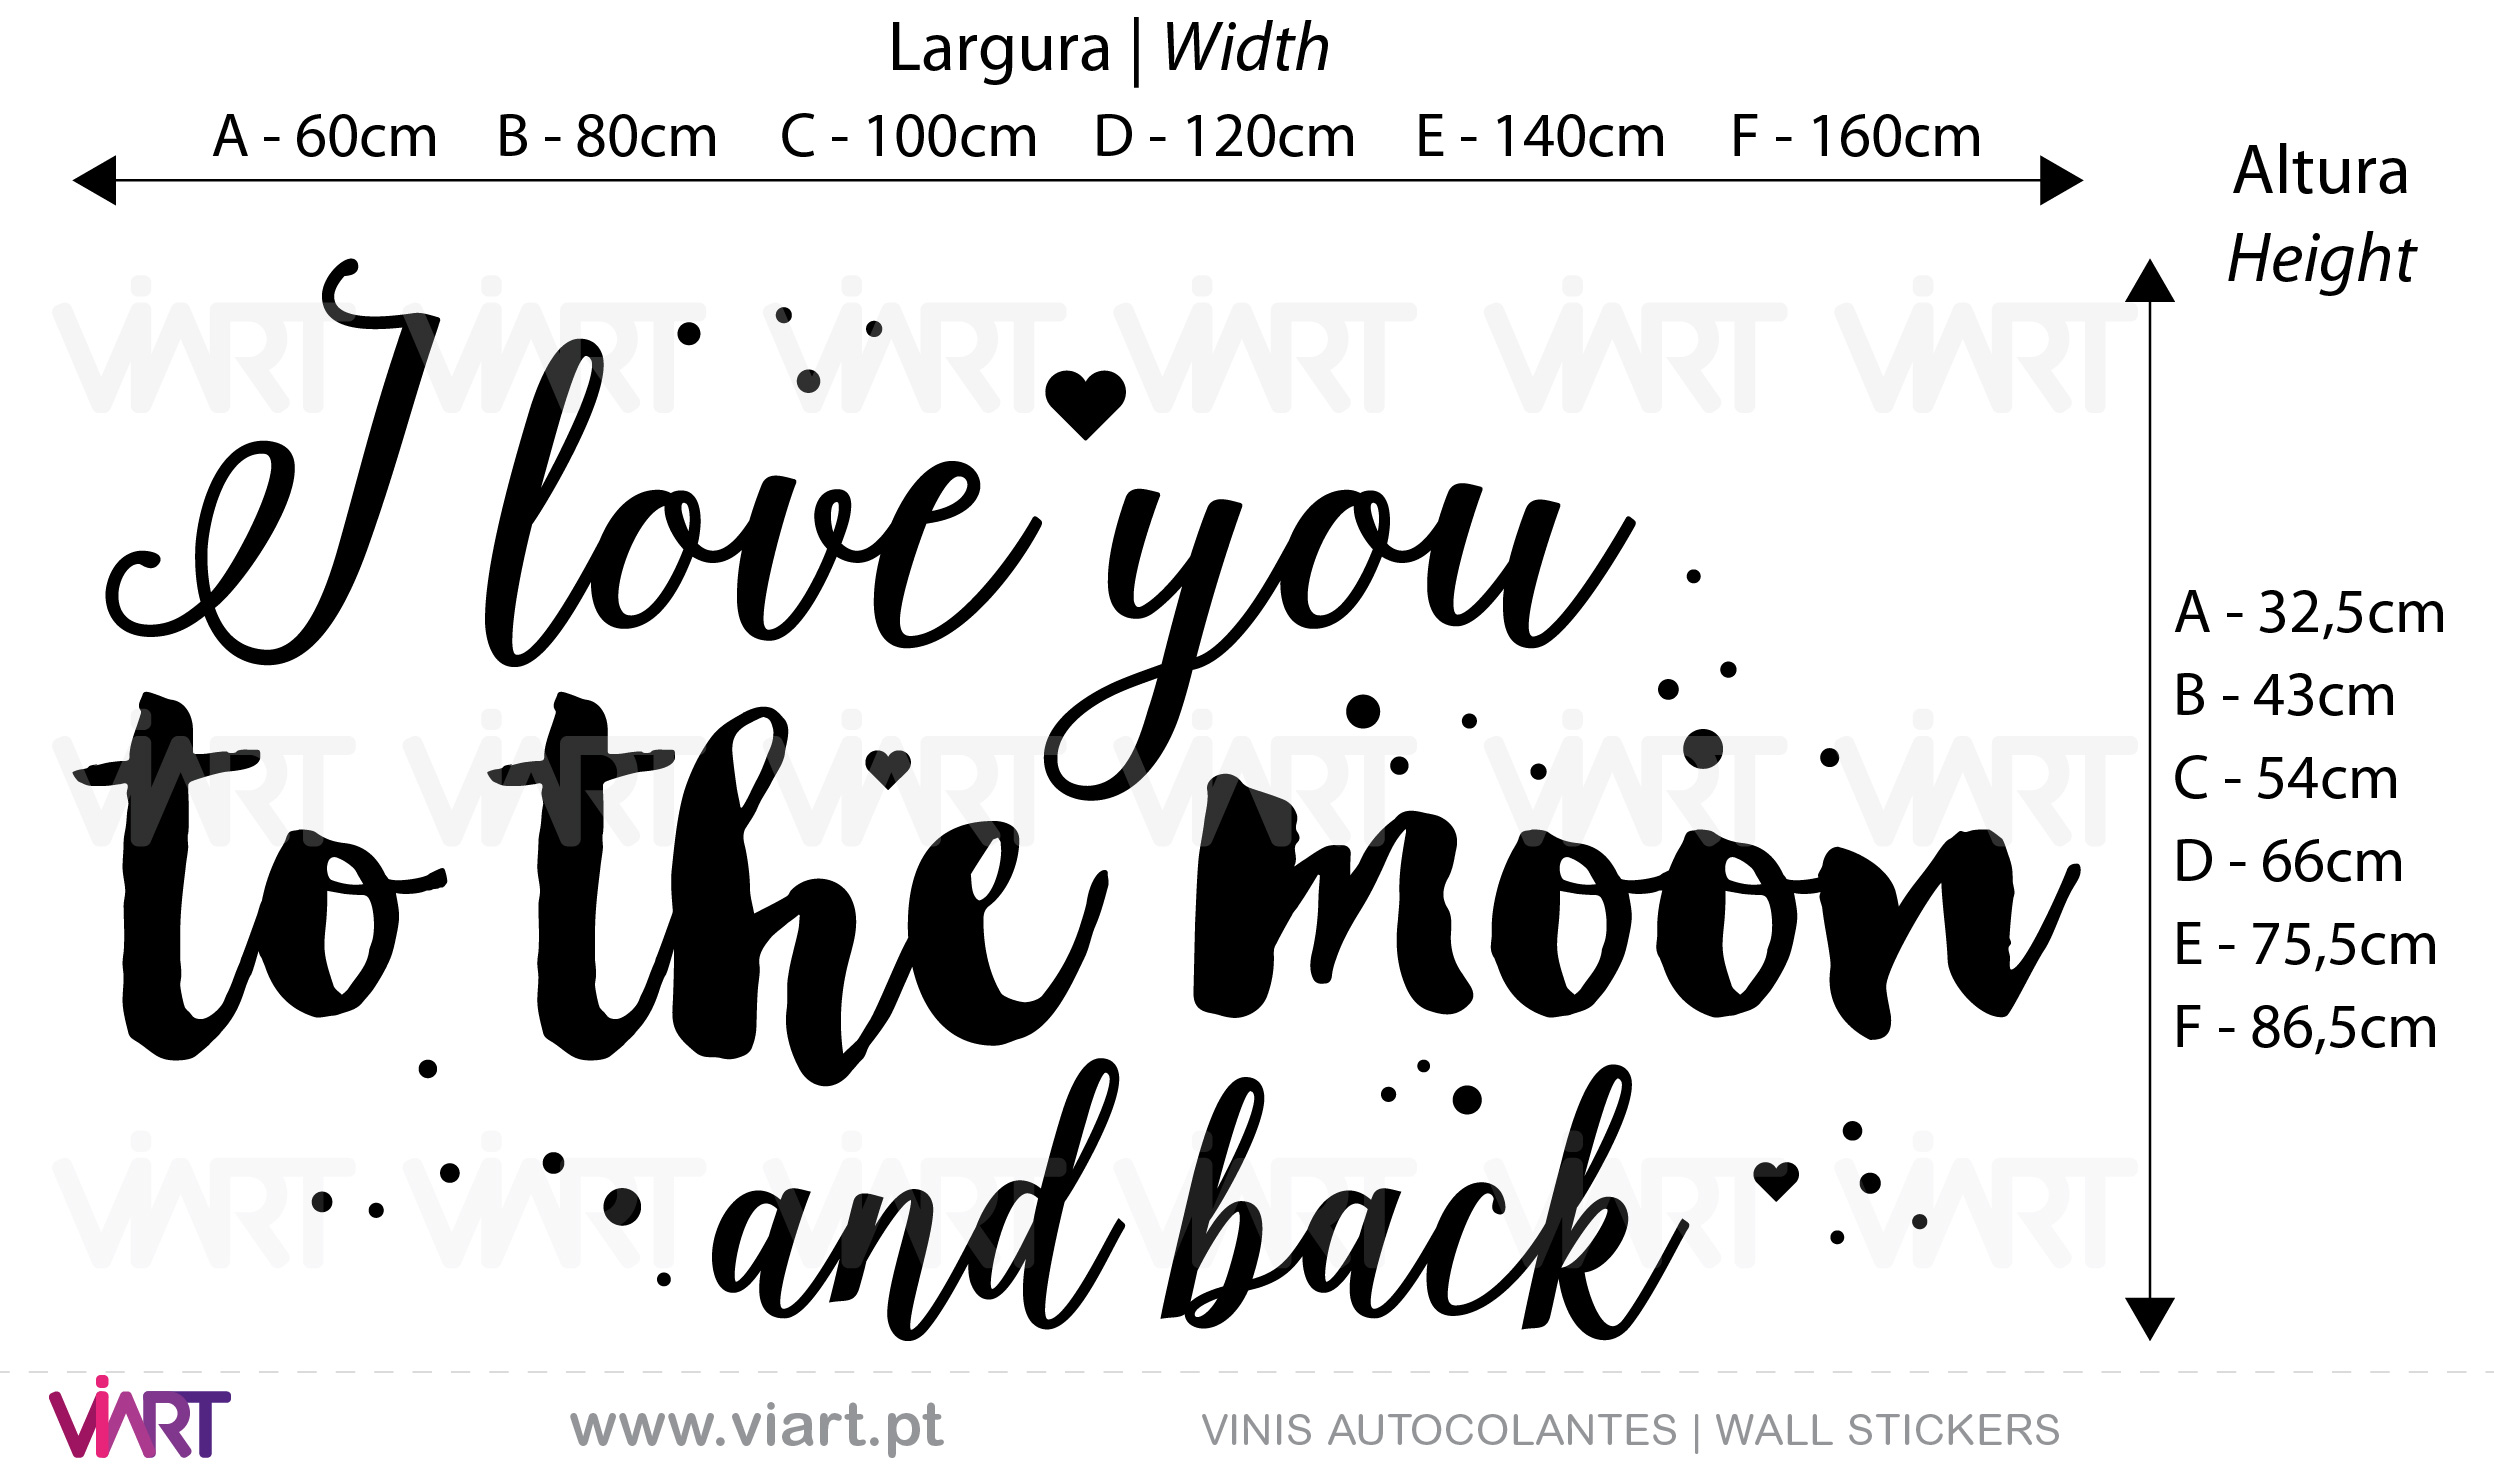 I love you to the moon and back... 2 Vinis Autocolantes decorativos. Decoração adesivos.